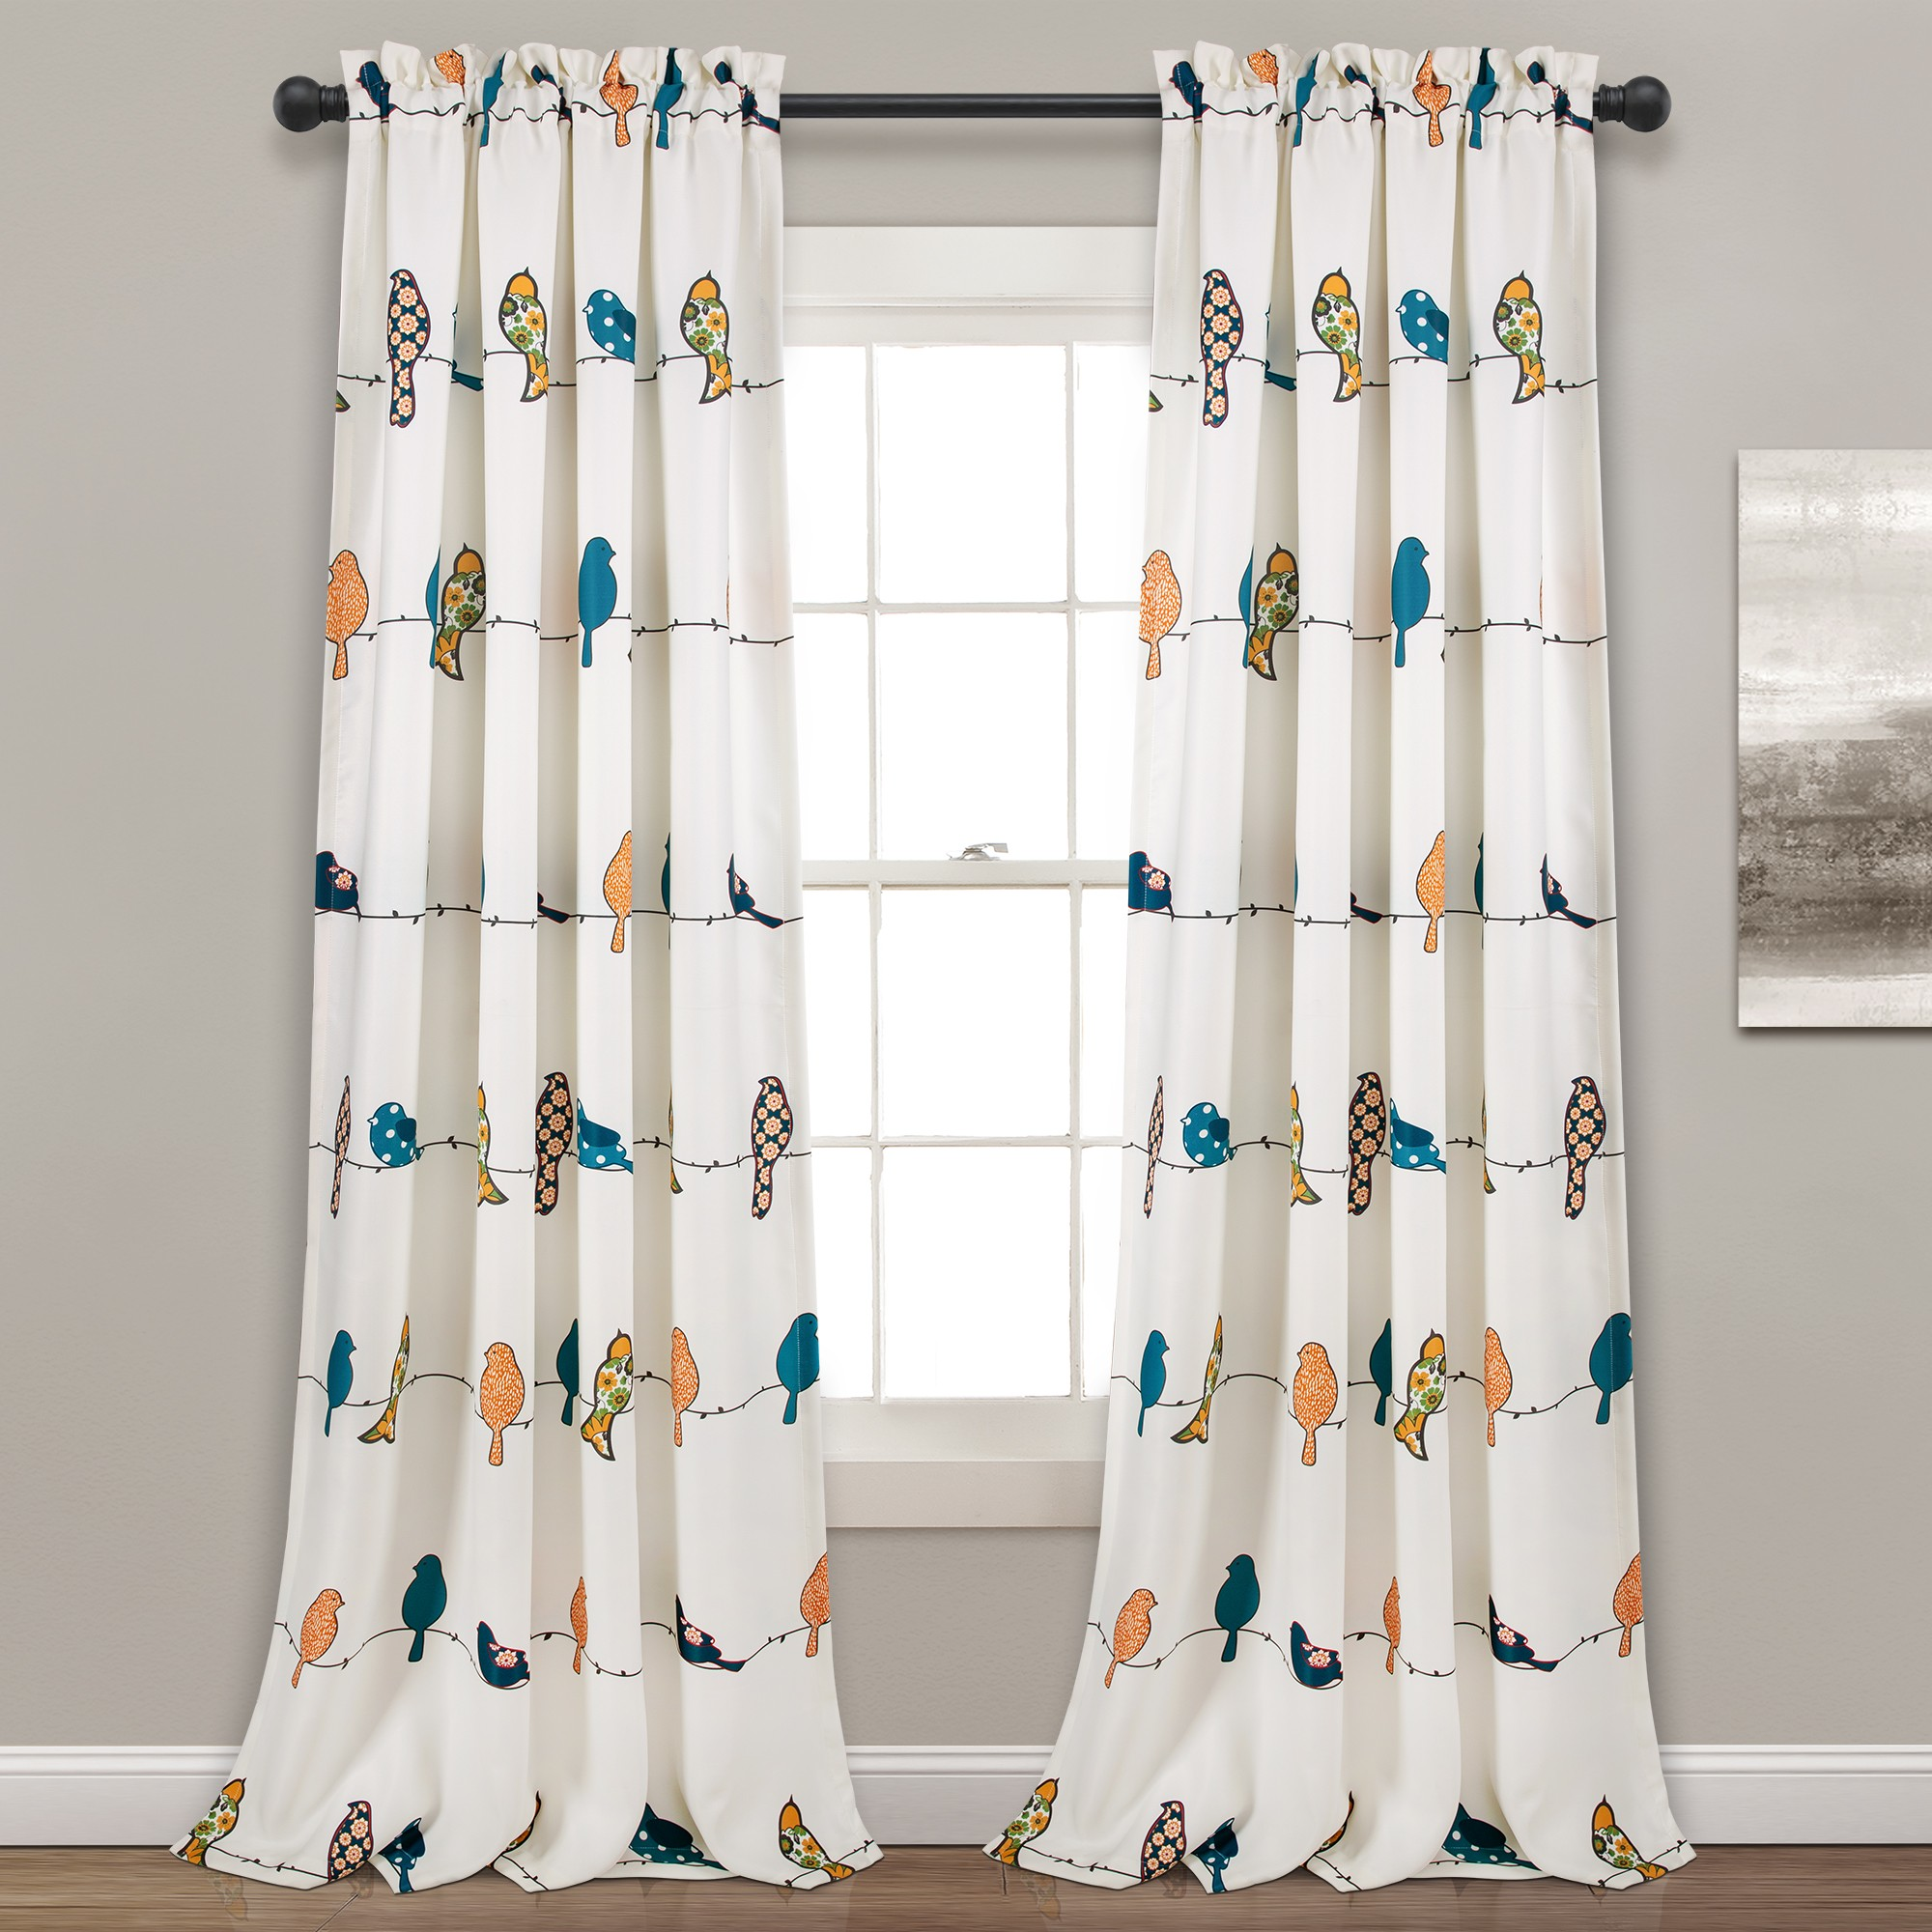 birds, rowley curtains, lush decor